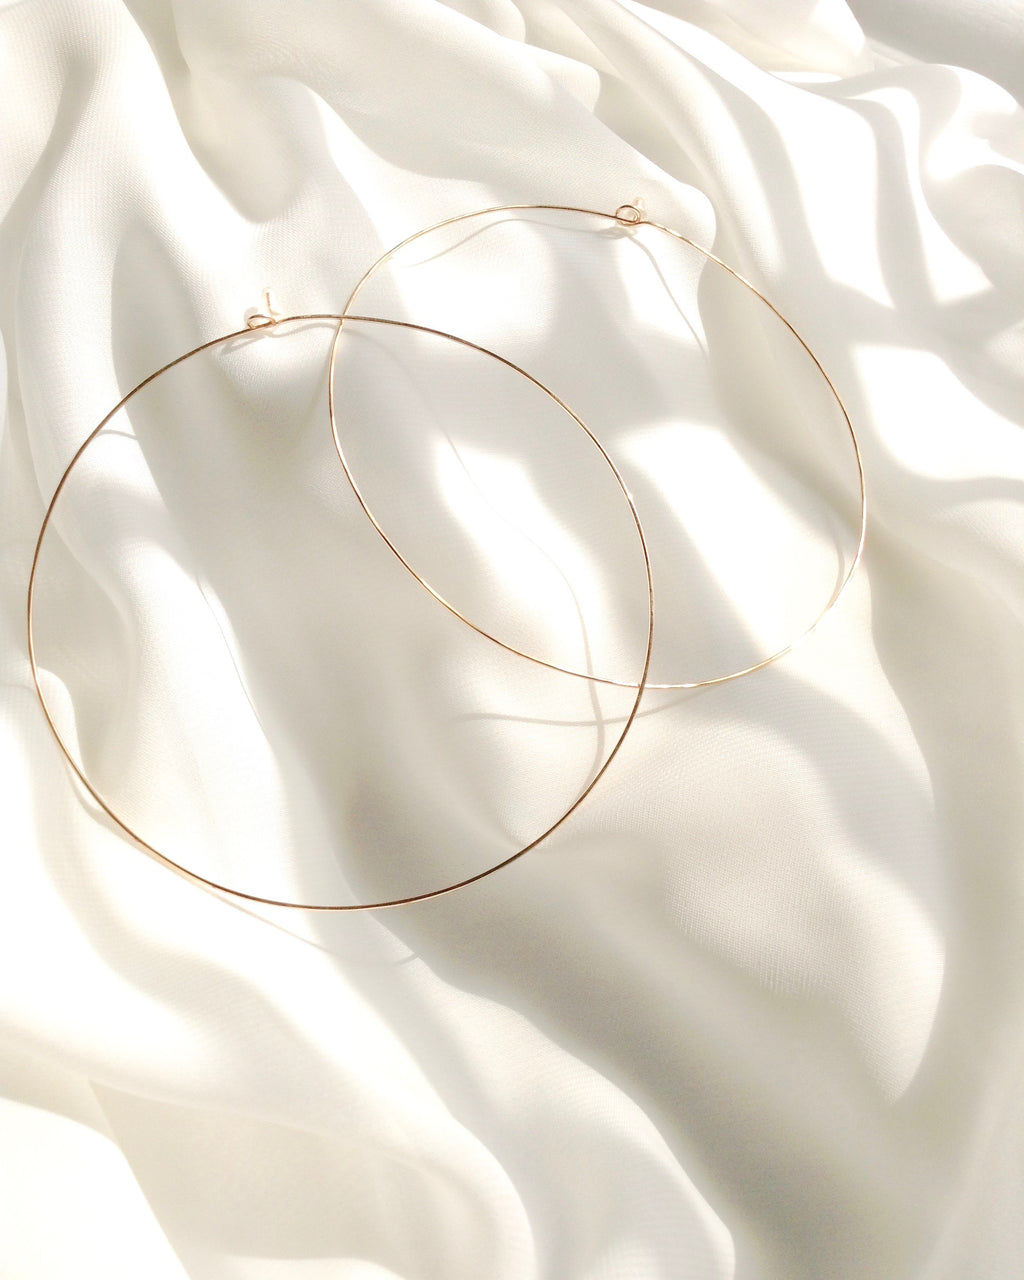 Extra Large Thin Hoop Earrings in Gold Filled Sterling Silver or Rose Gold Filled | IB Jewelry